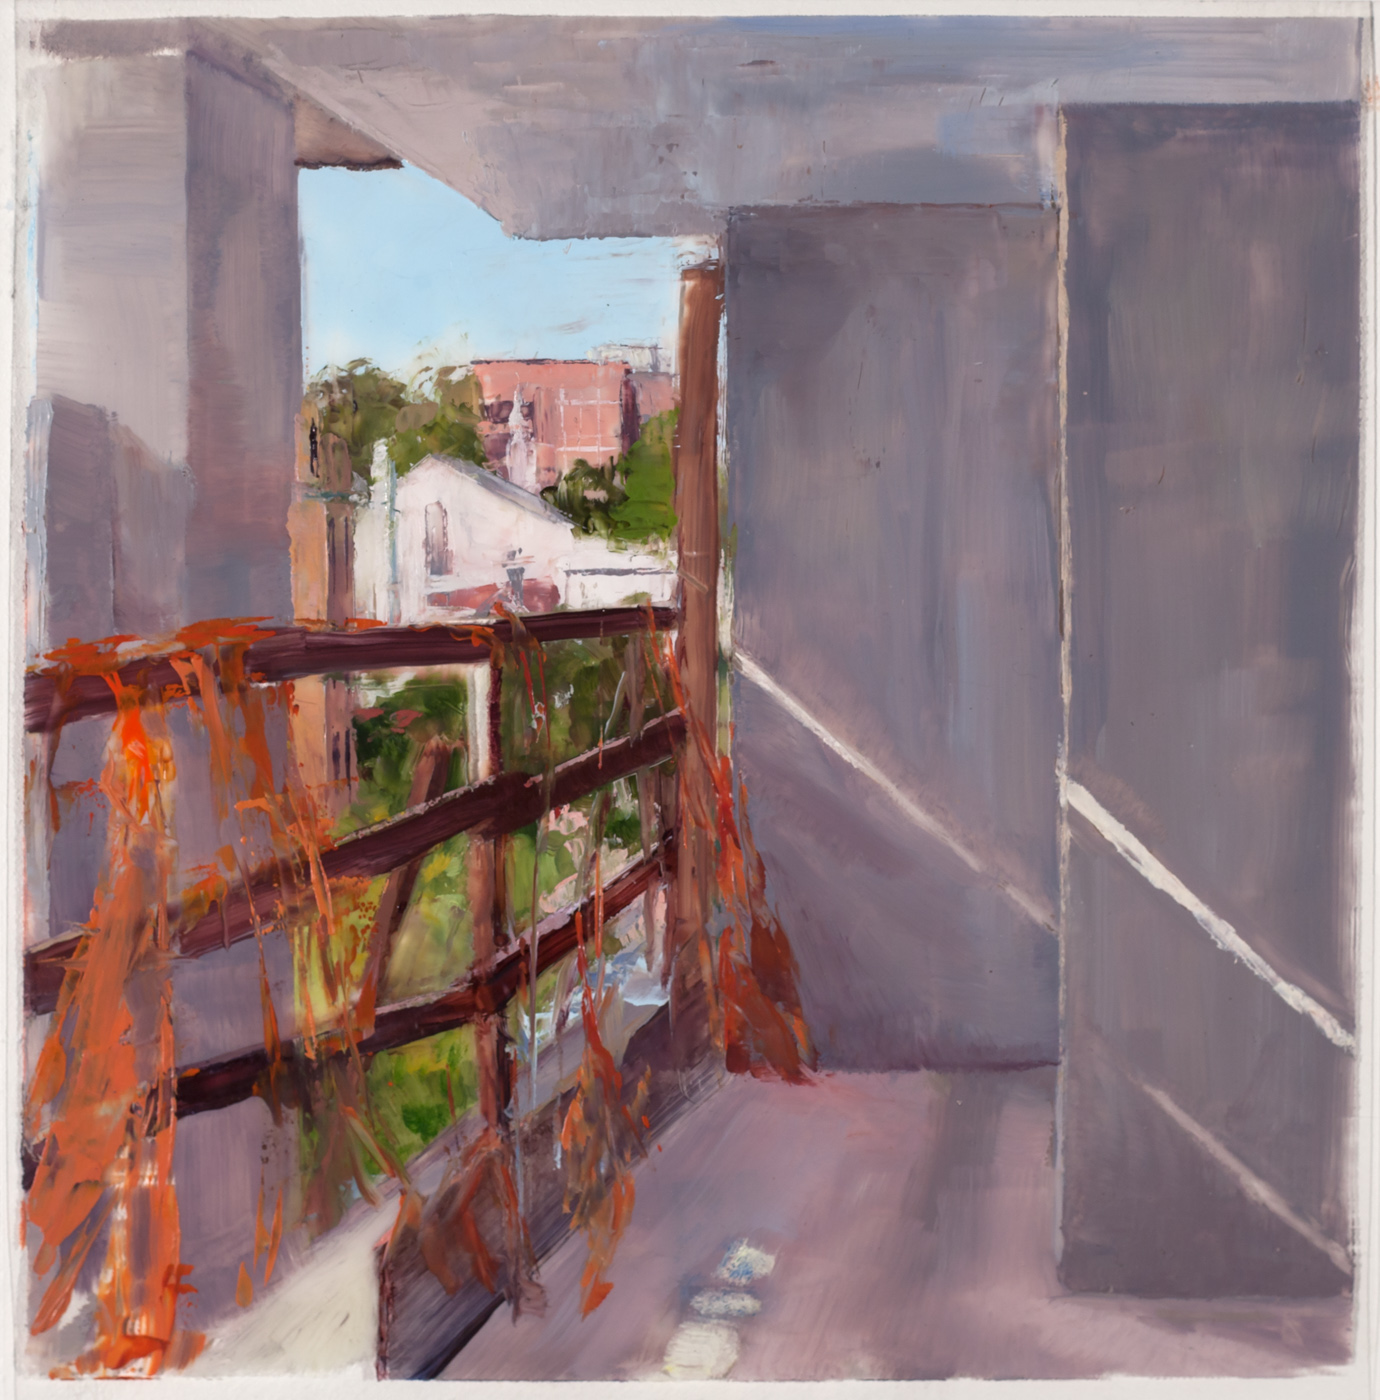 On-site study for 163rd St , 2017 oil on dura-lar, 6 x 6 in